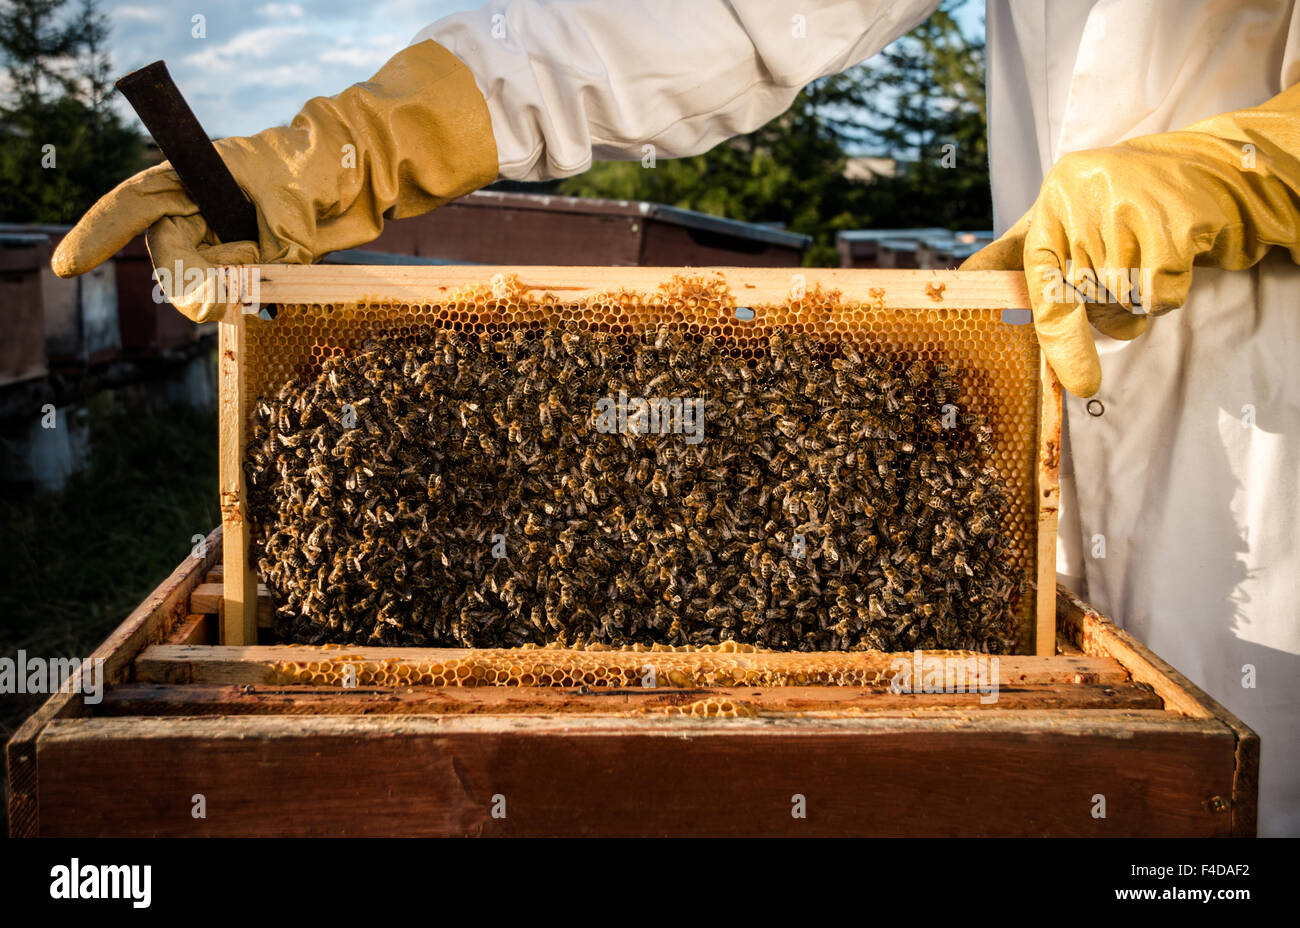 Beekeeping frame full of workinf bees. Honey is visible inside the cells Stock Photo